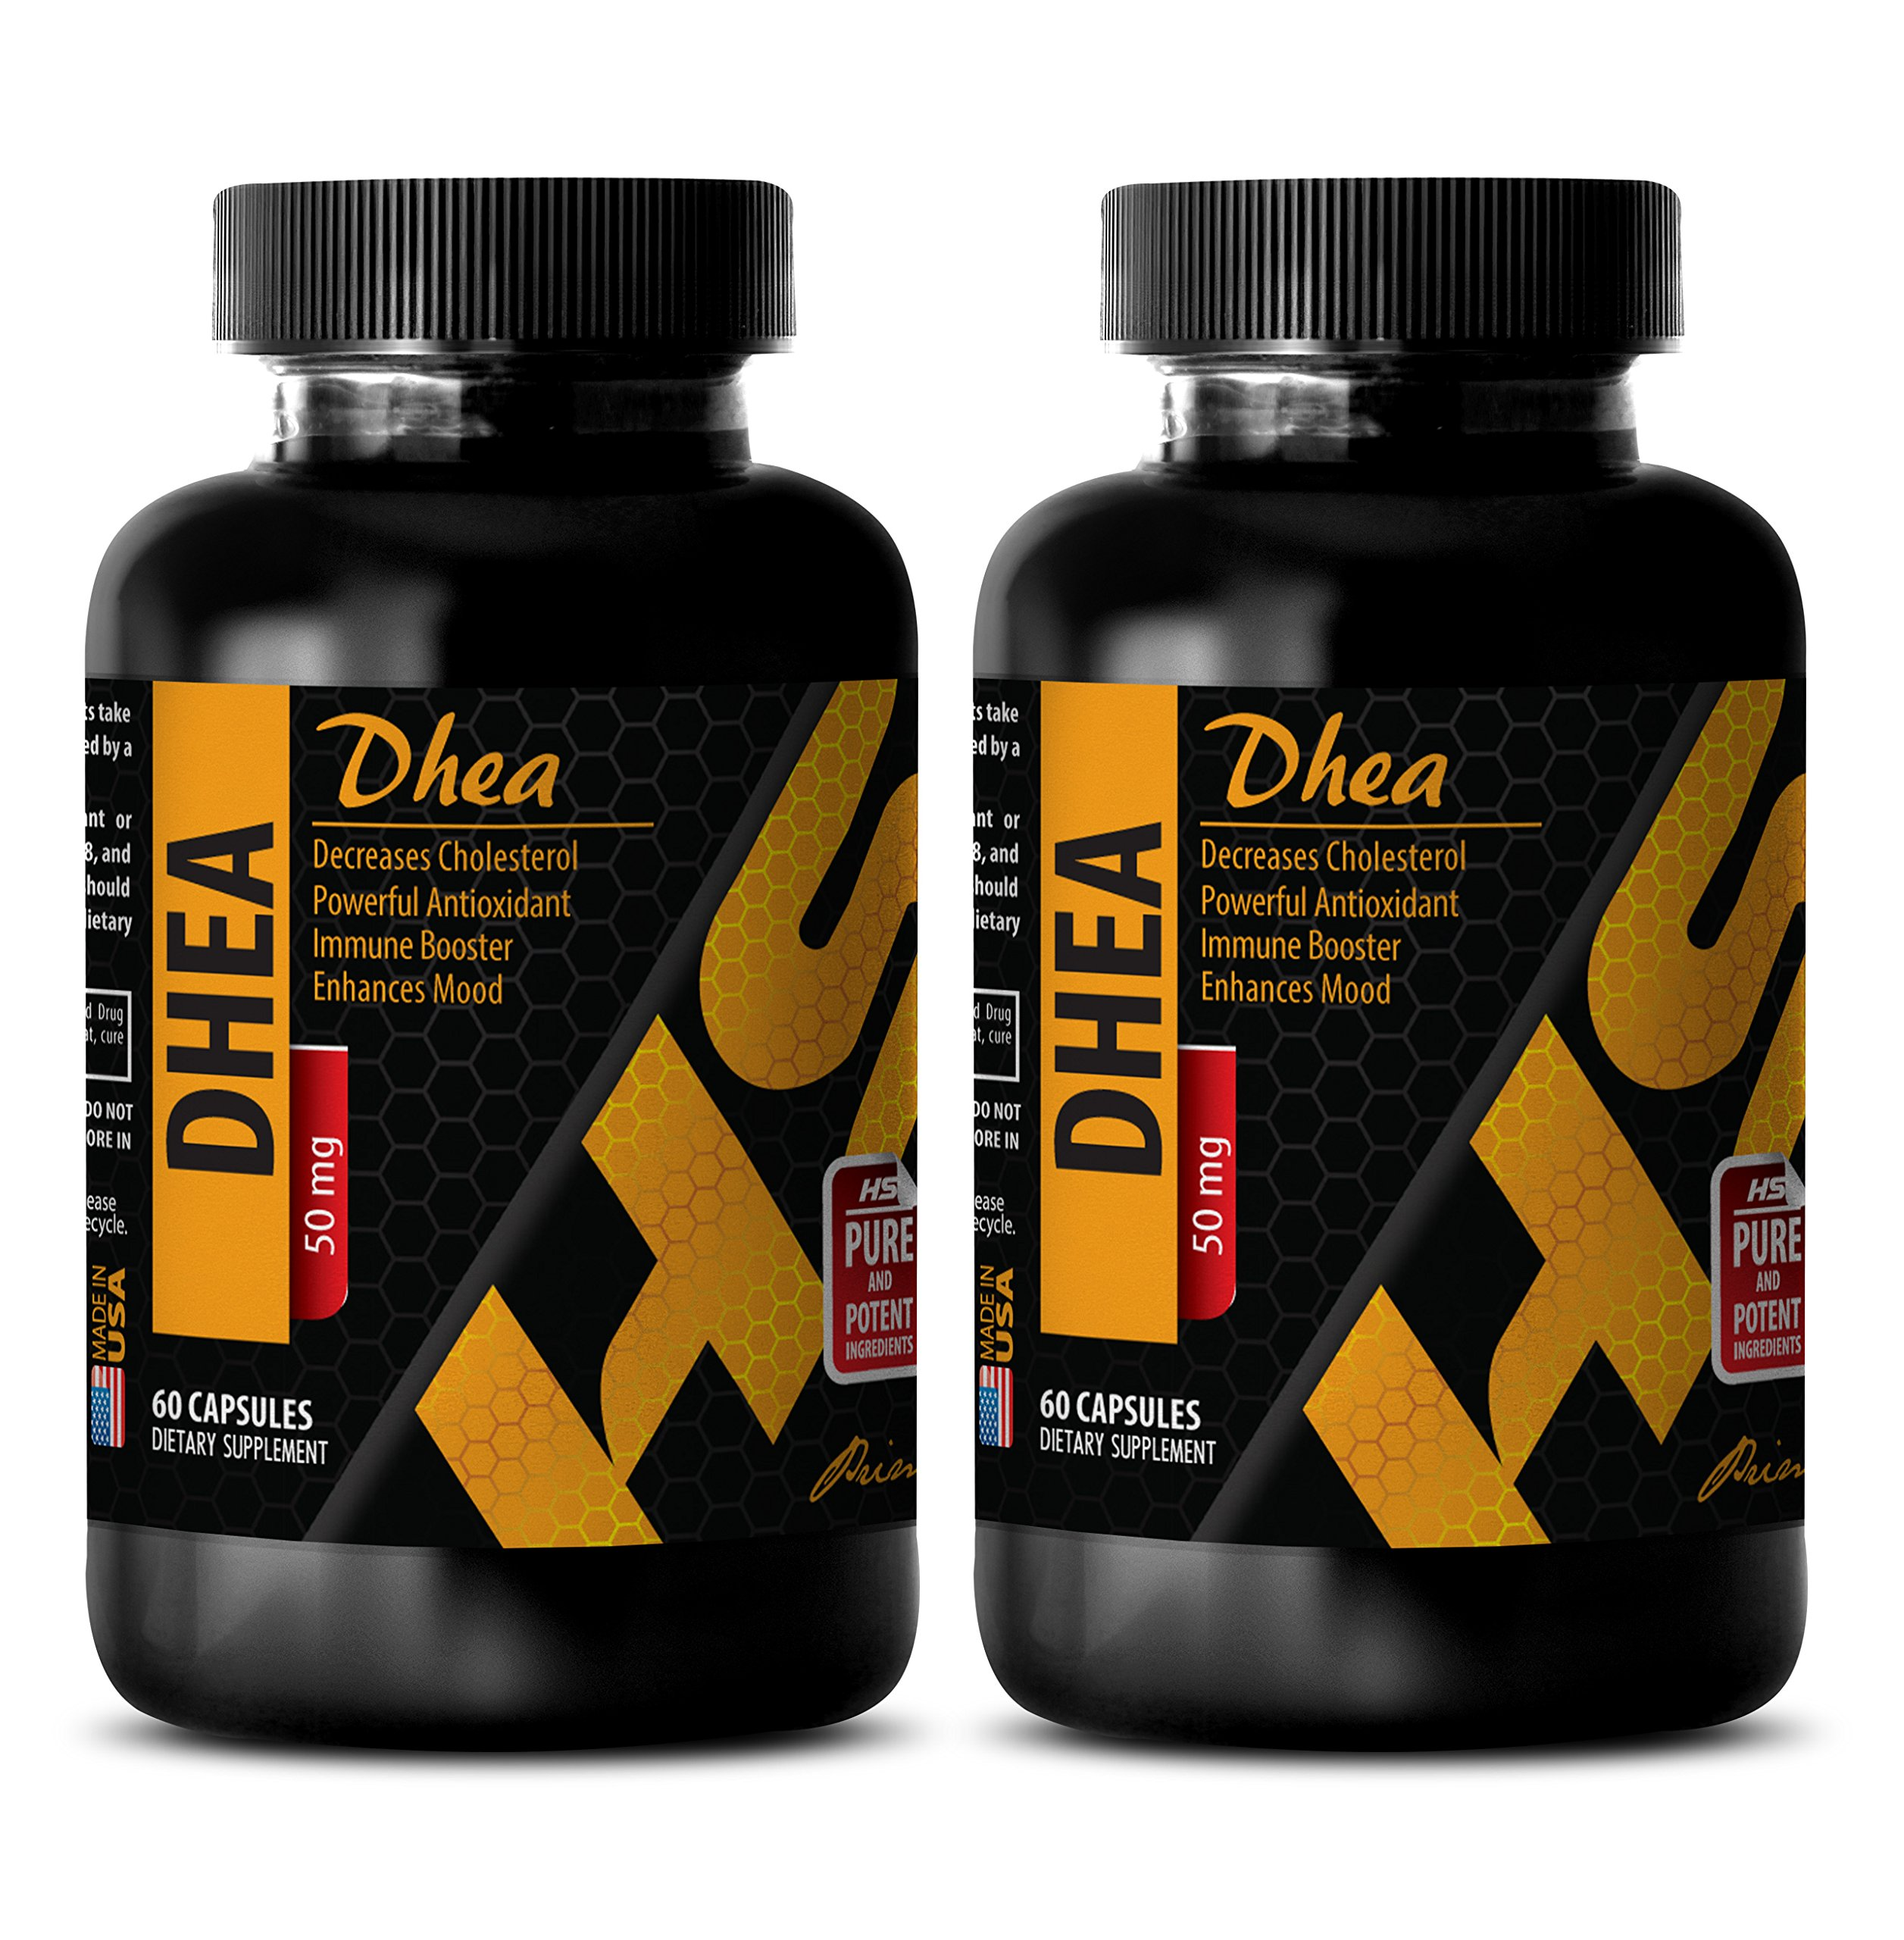 Weight loss pills - DHEA - Dhea energy - 2 Bottles 120 Capsules